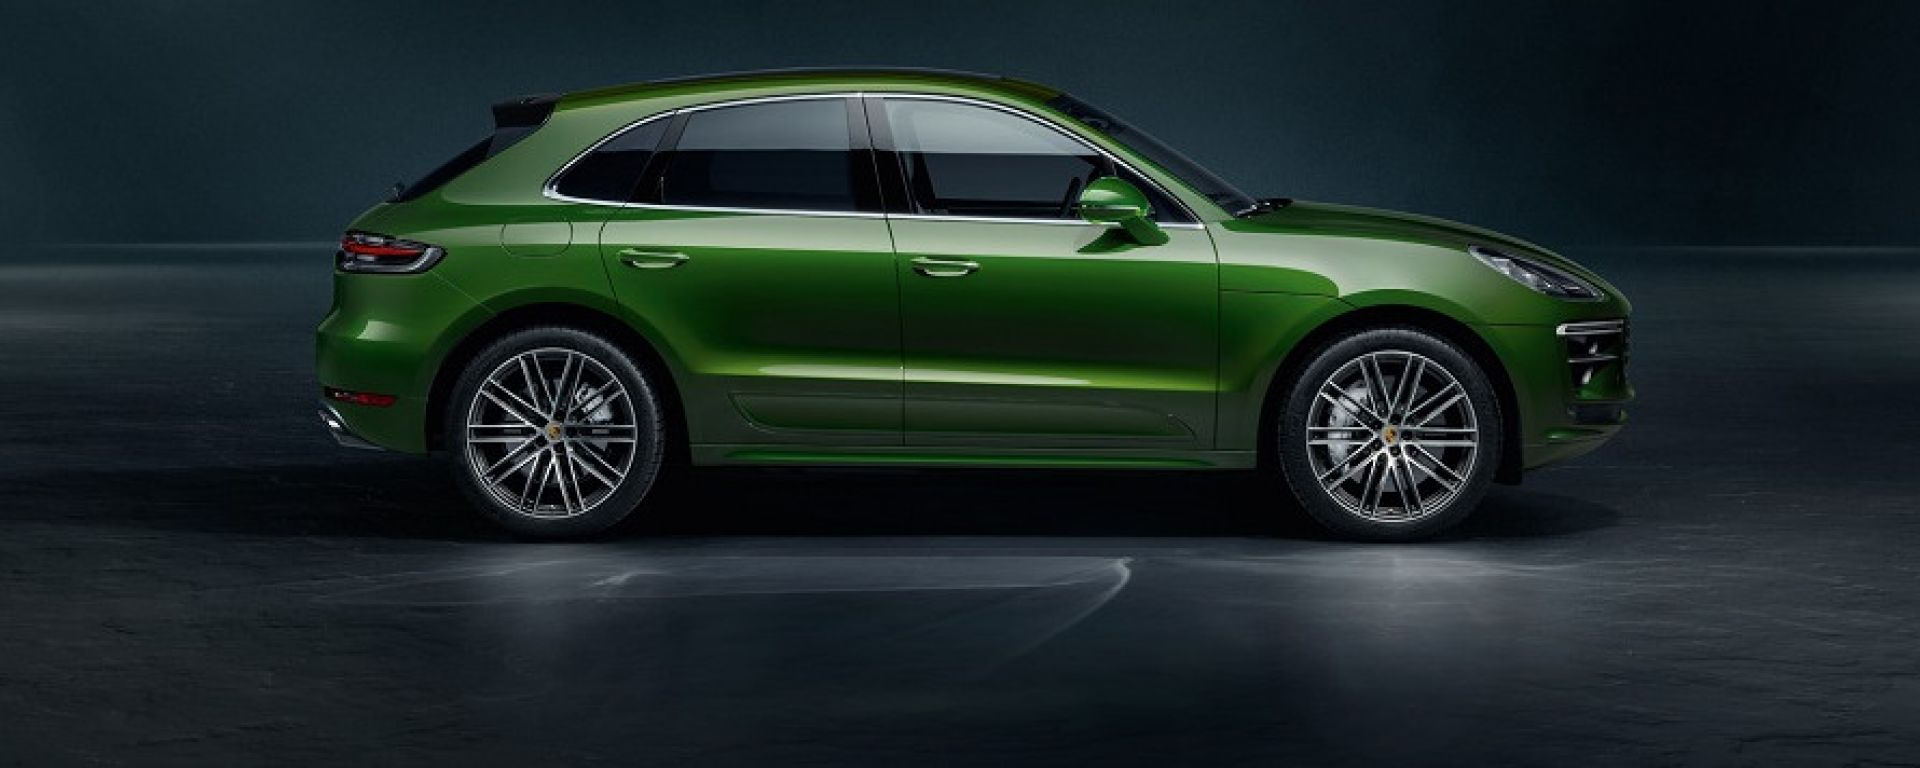 Porsche Macan Turbo 2020: vista laterale